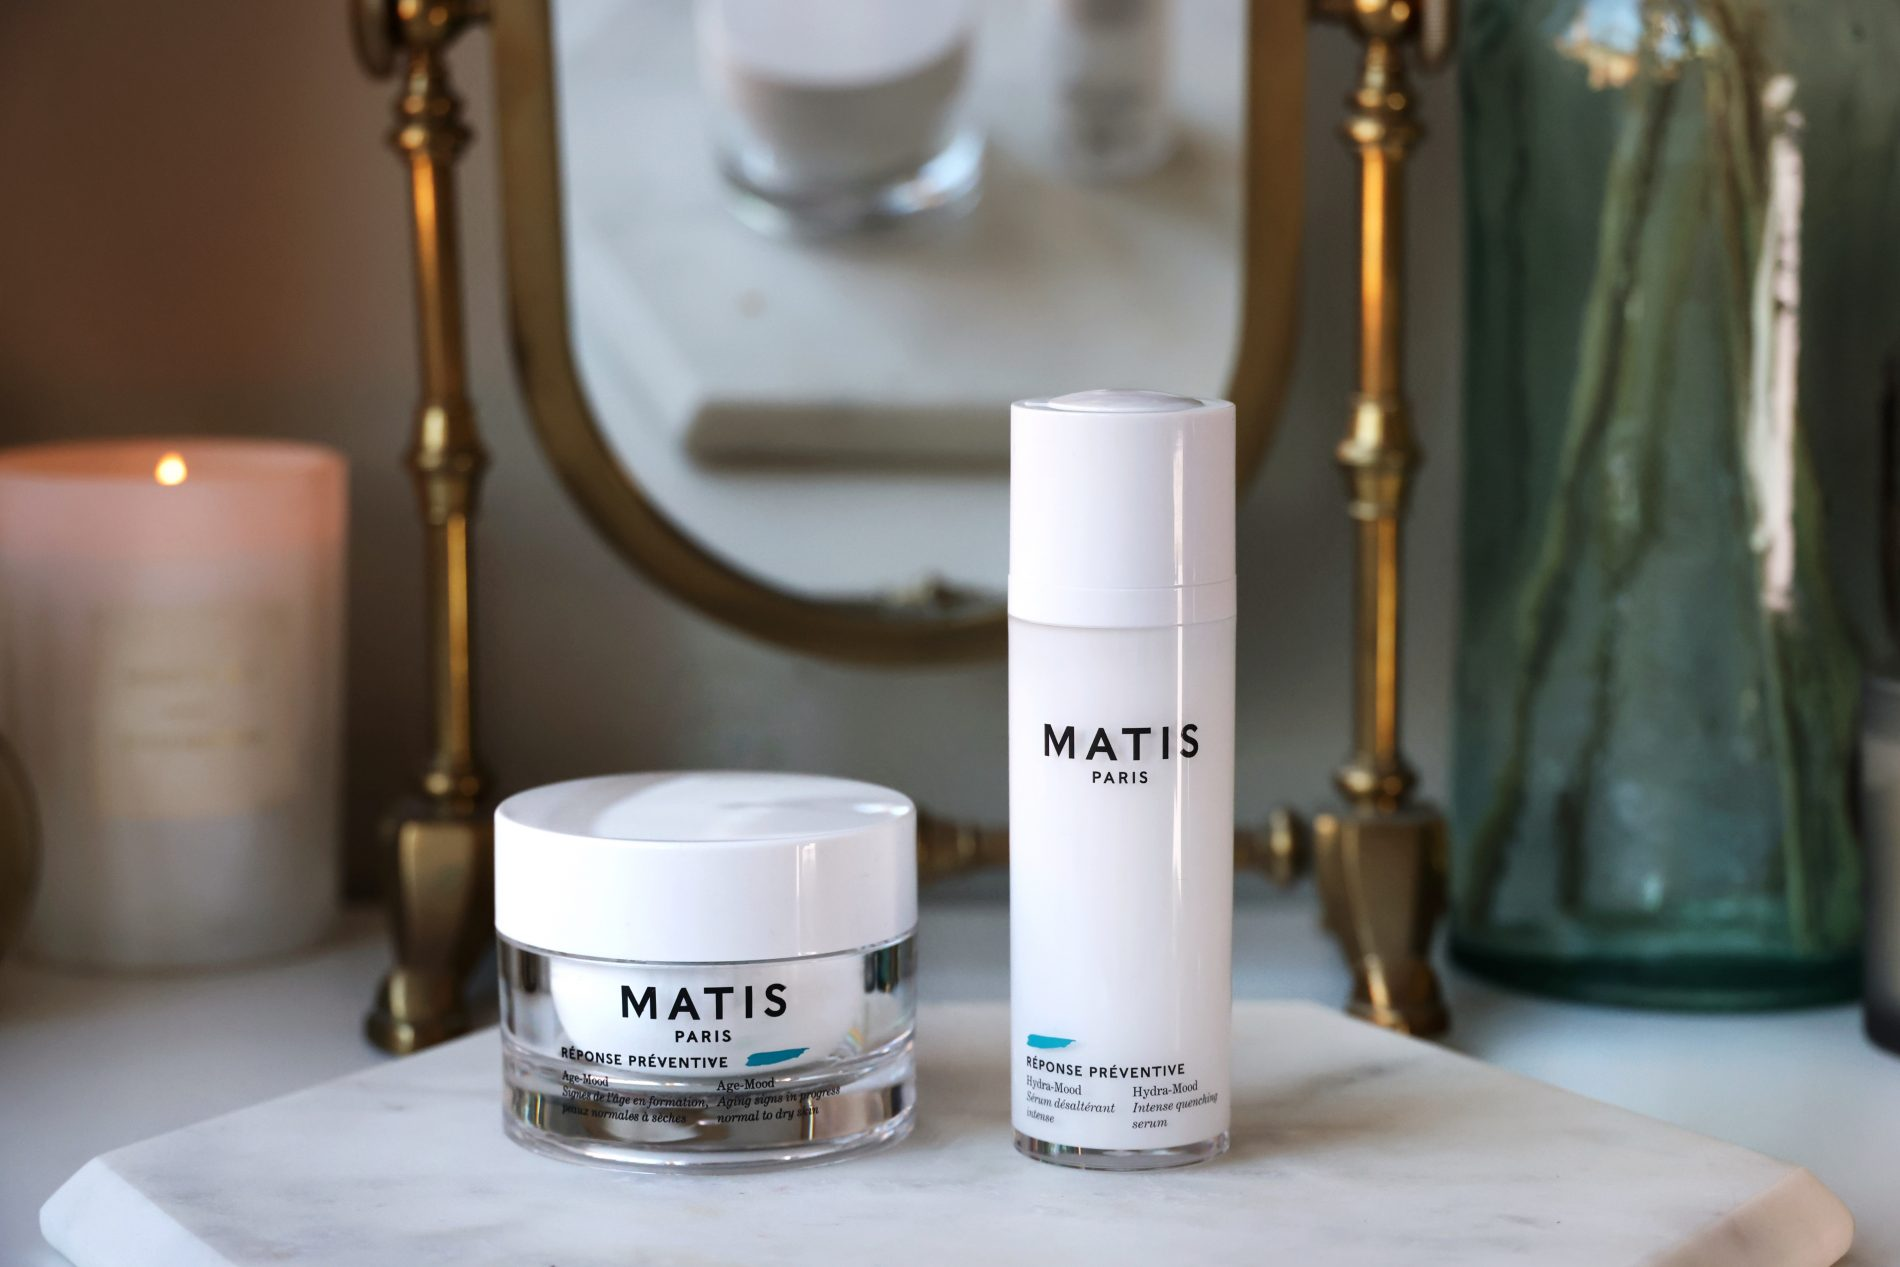 Matis Paris The White Gold Set skincare cruelty free. A pot of moisturiser and a serum stand on a marble top in front of a gold mirror to be reviewed in this blog post